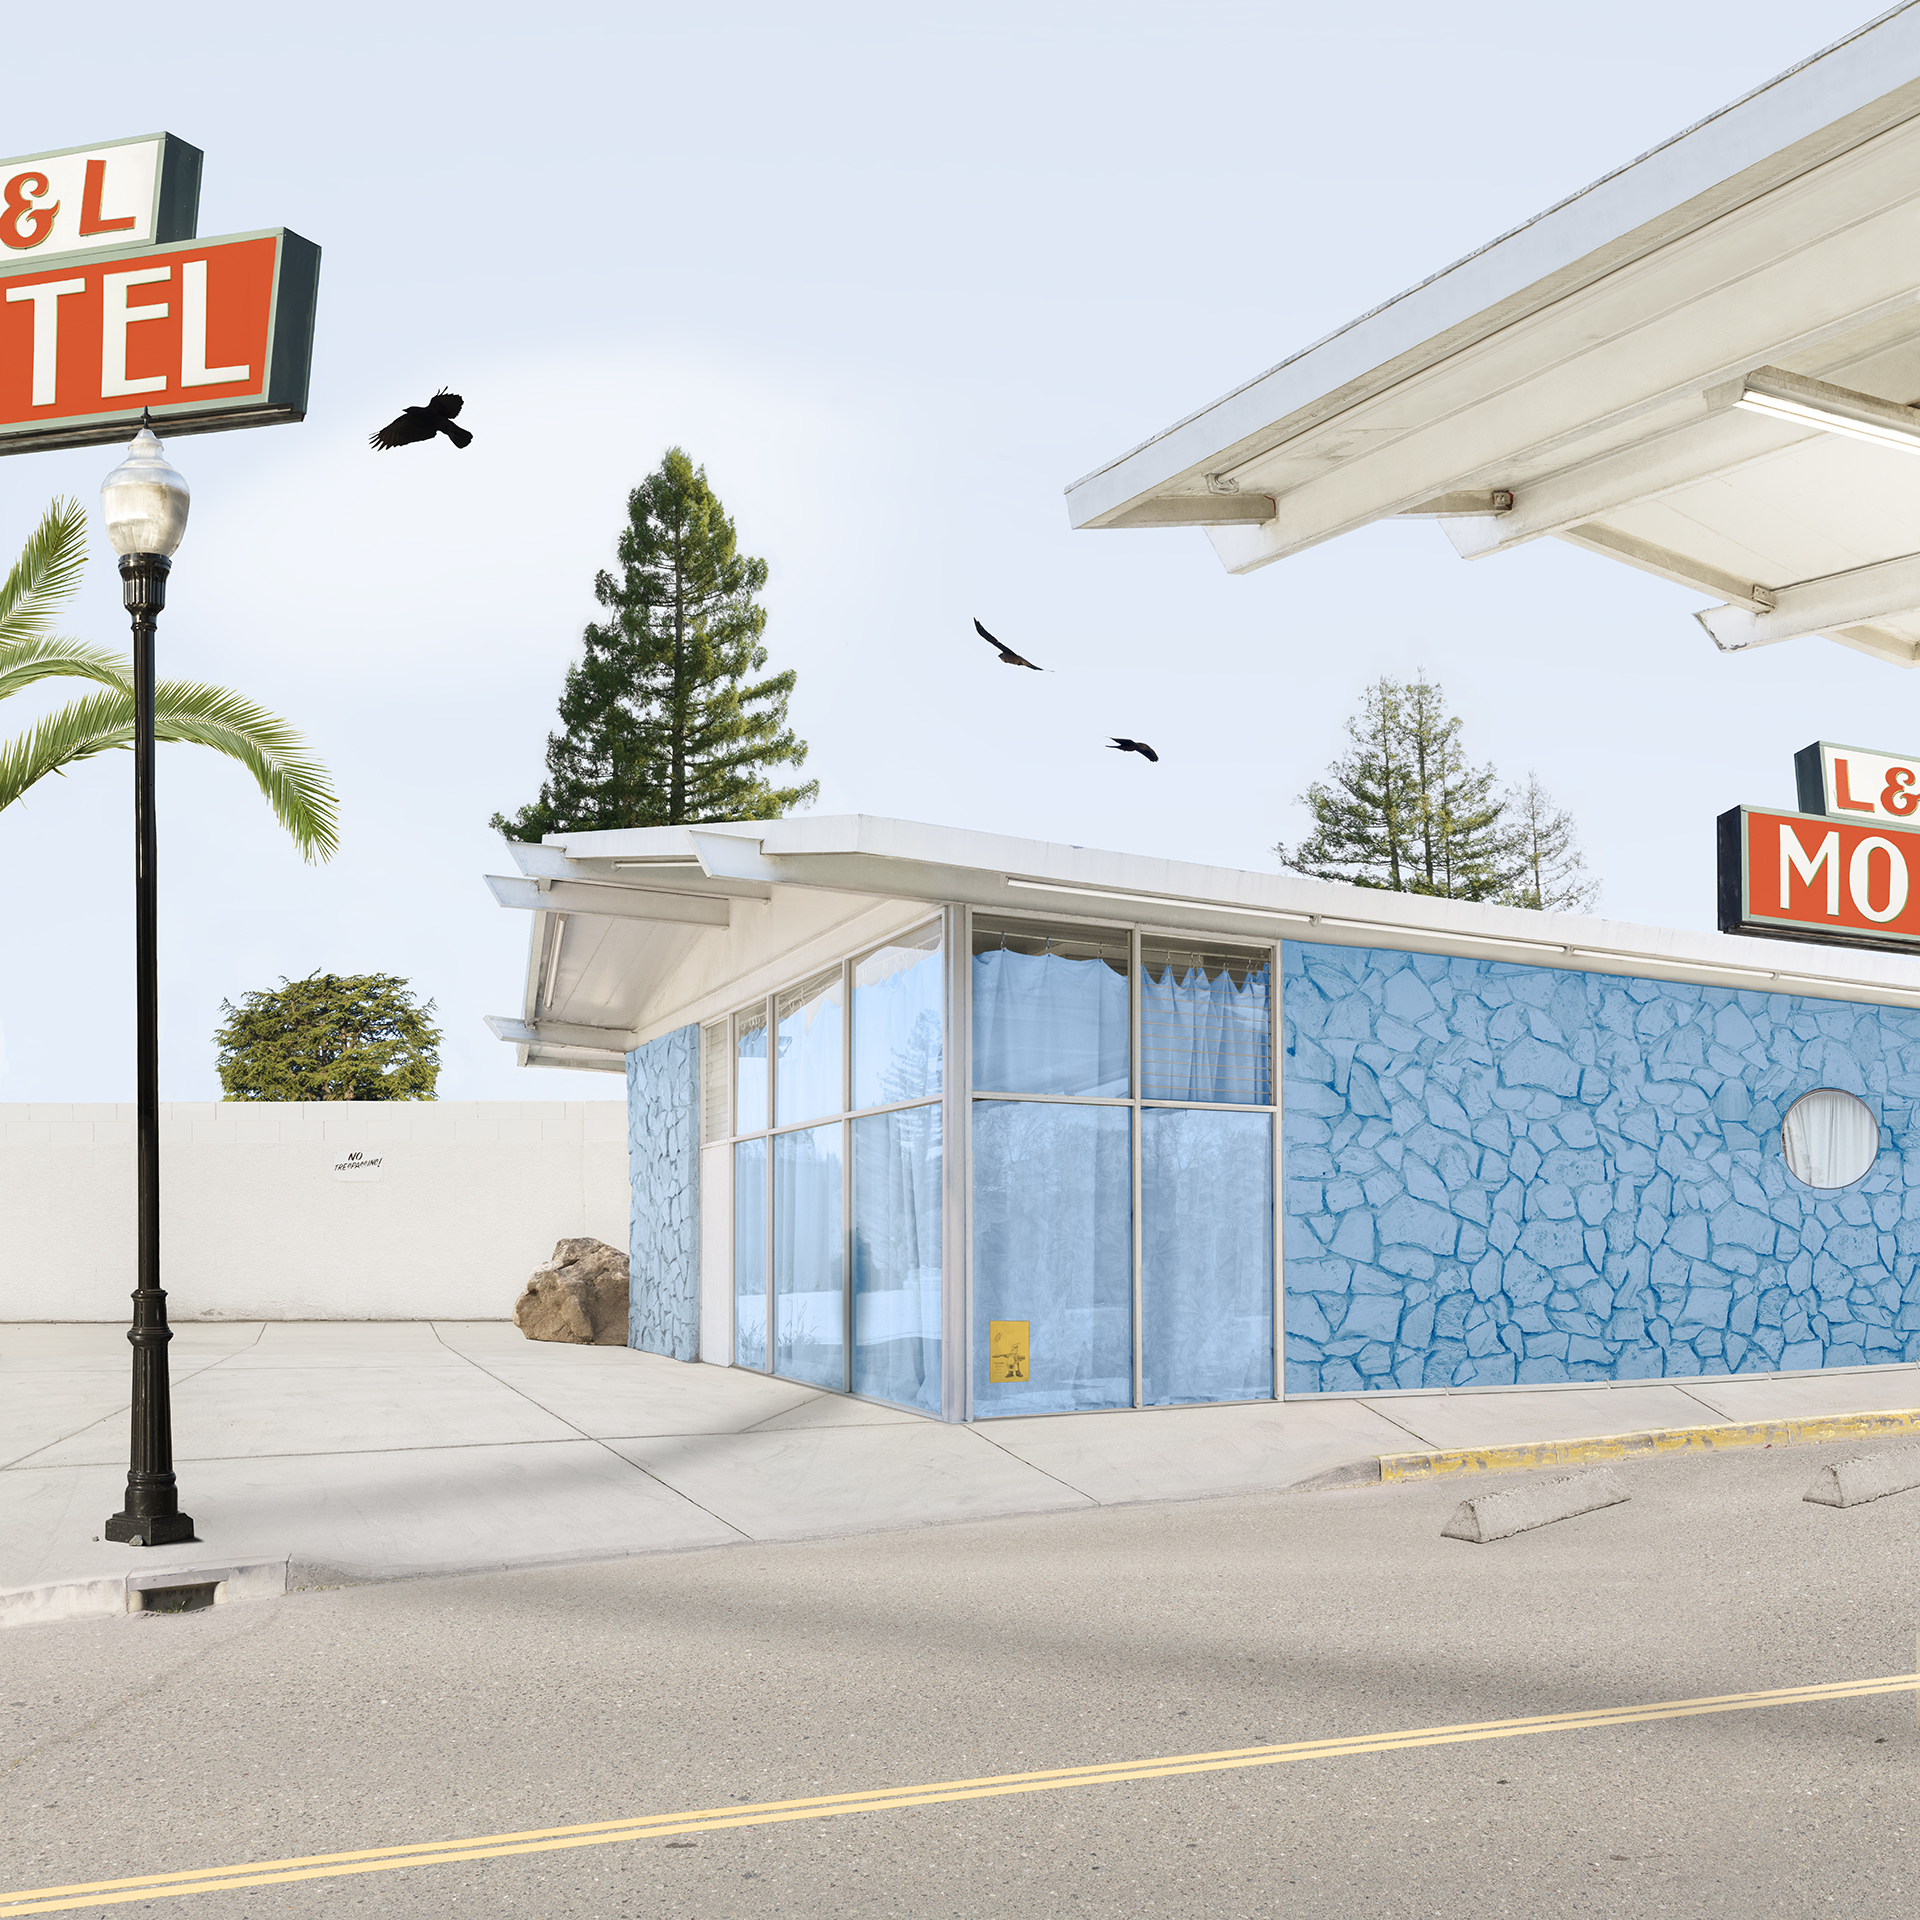 Motel,  30 x 30 inches, archival pigment print, 2018